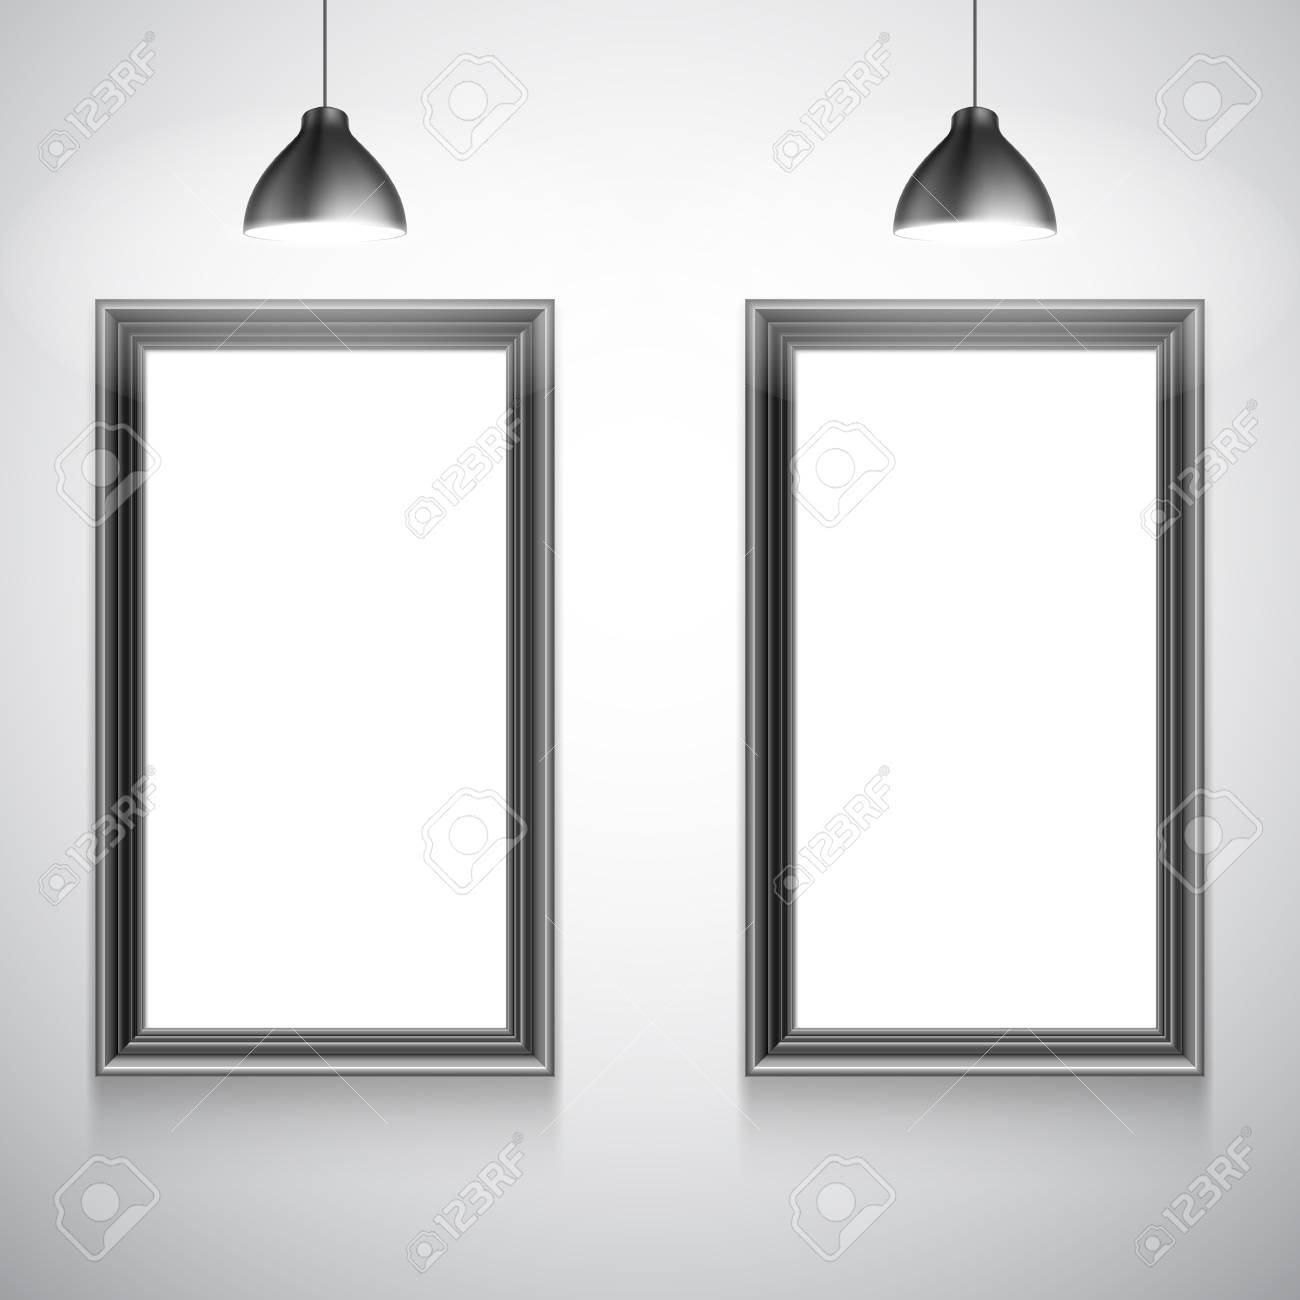 Two Blank White Poster Frames Inside Gallery Interior. Poster ...